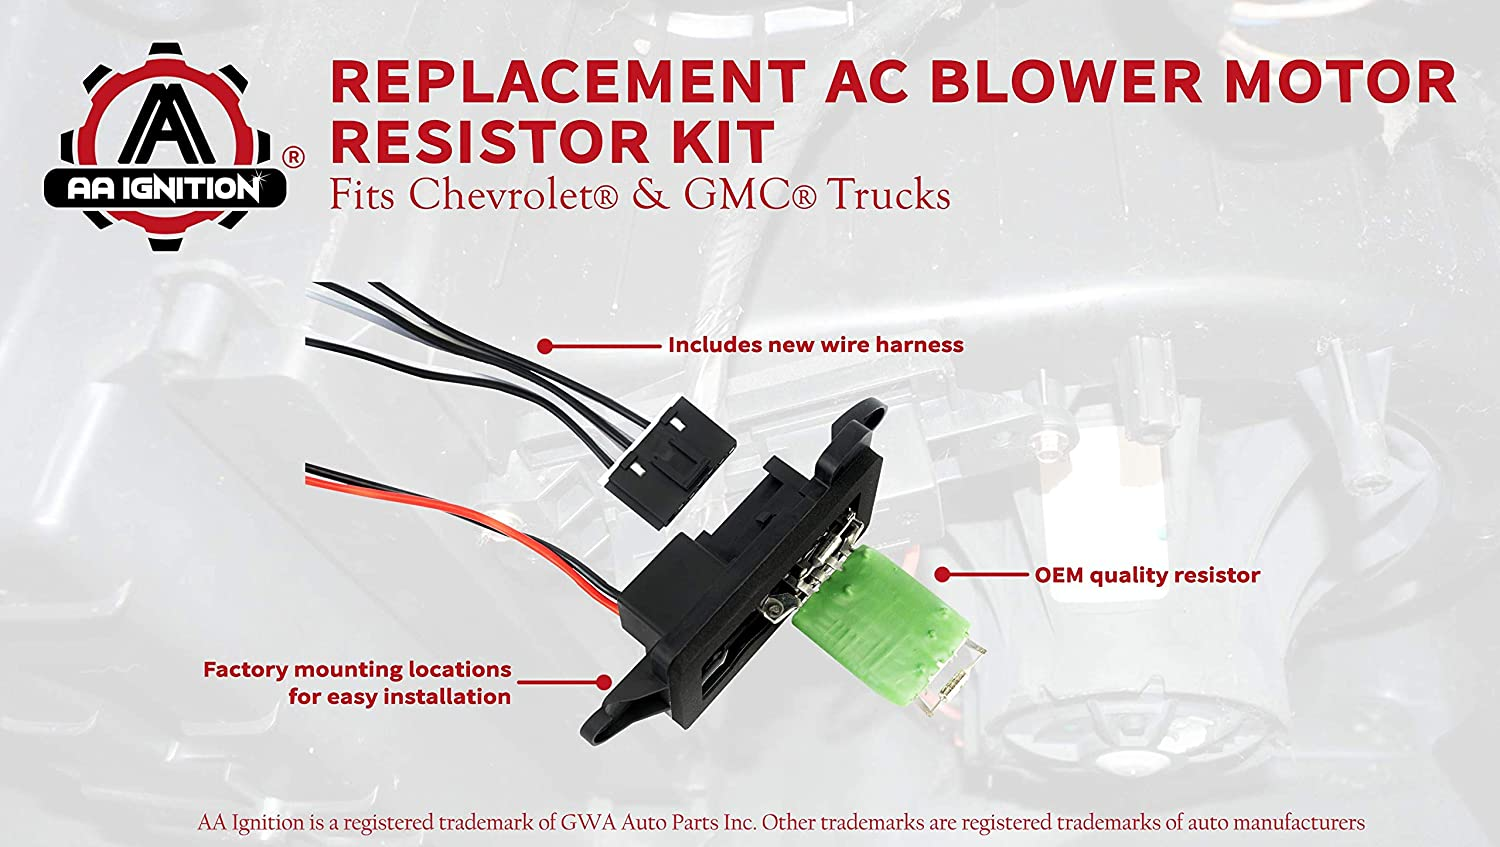 Ac Blower Motor Resistor Kit With Harness Replaces Replacing Wiring Loom 89019088 973 405 15 81086 22807123 Fits Chevy Silverado Tahoe Suburban Avalanche